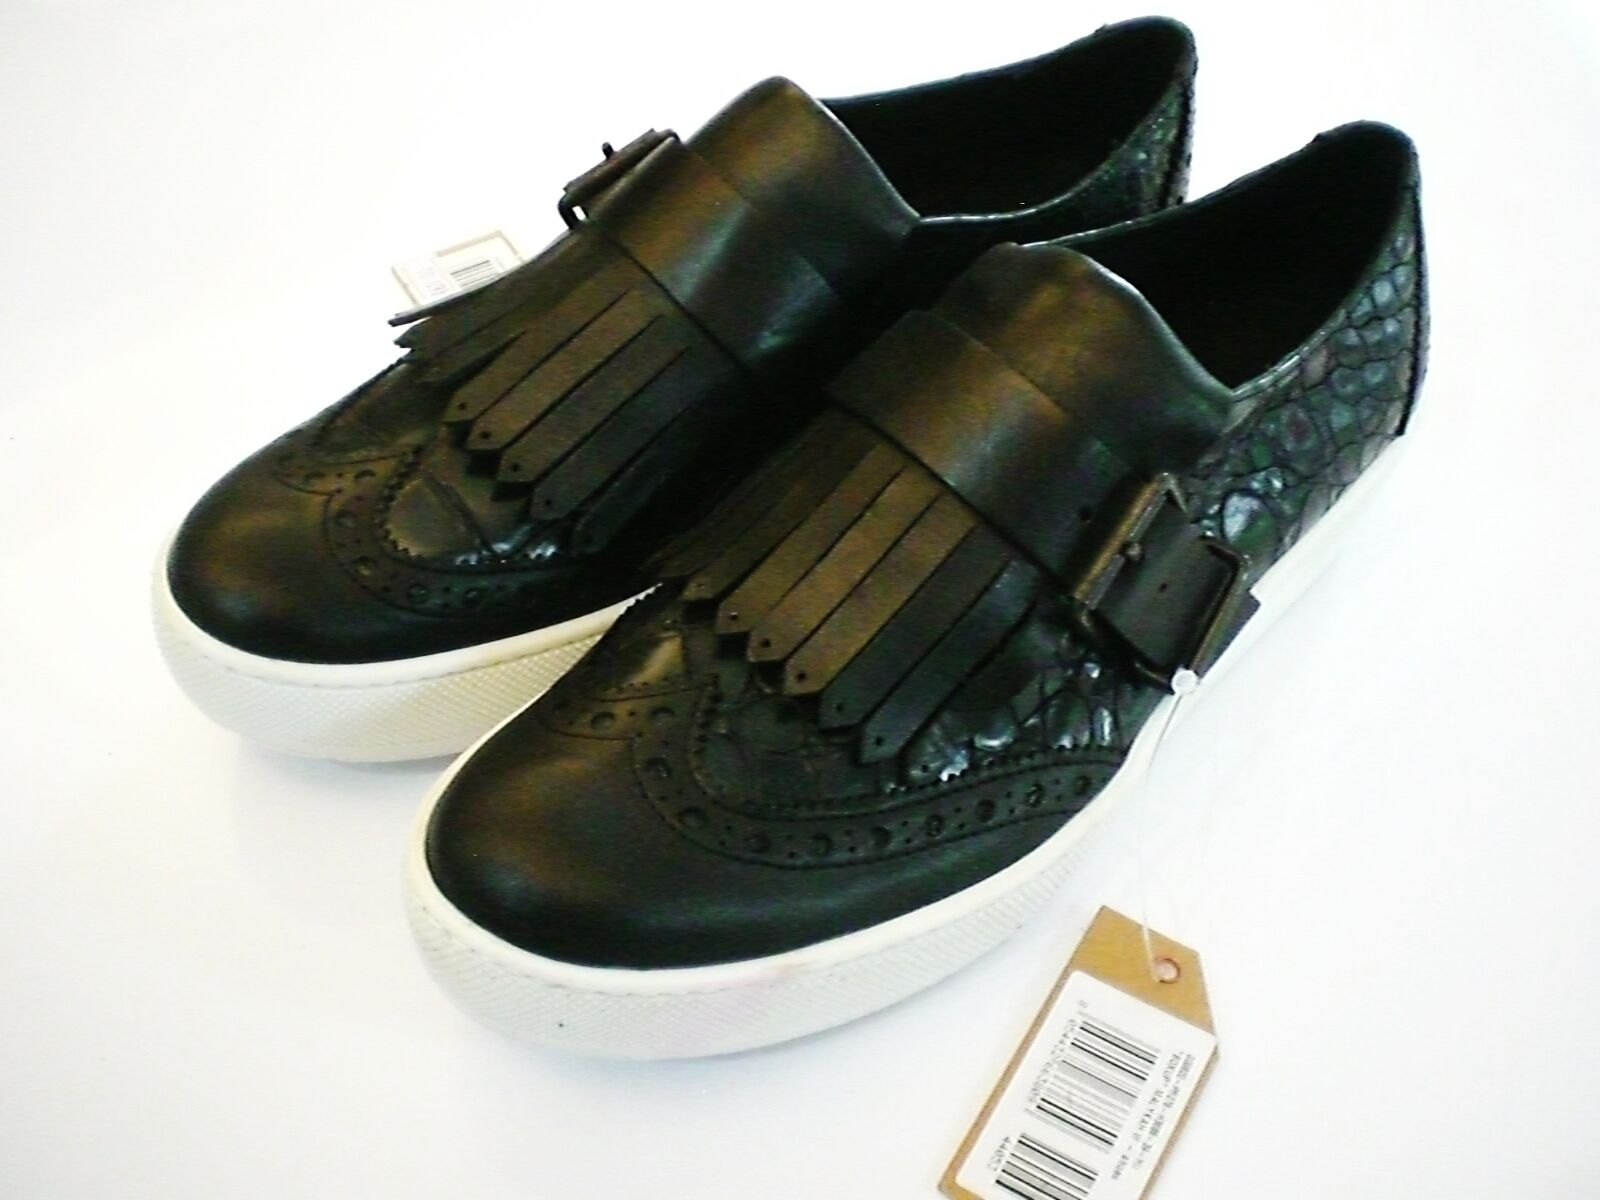 Genuine Diesel Womens shoes boxup malykah Size 39 Platform Trainers Real Leather New